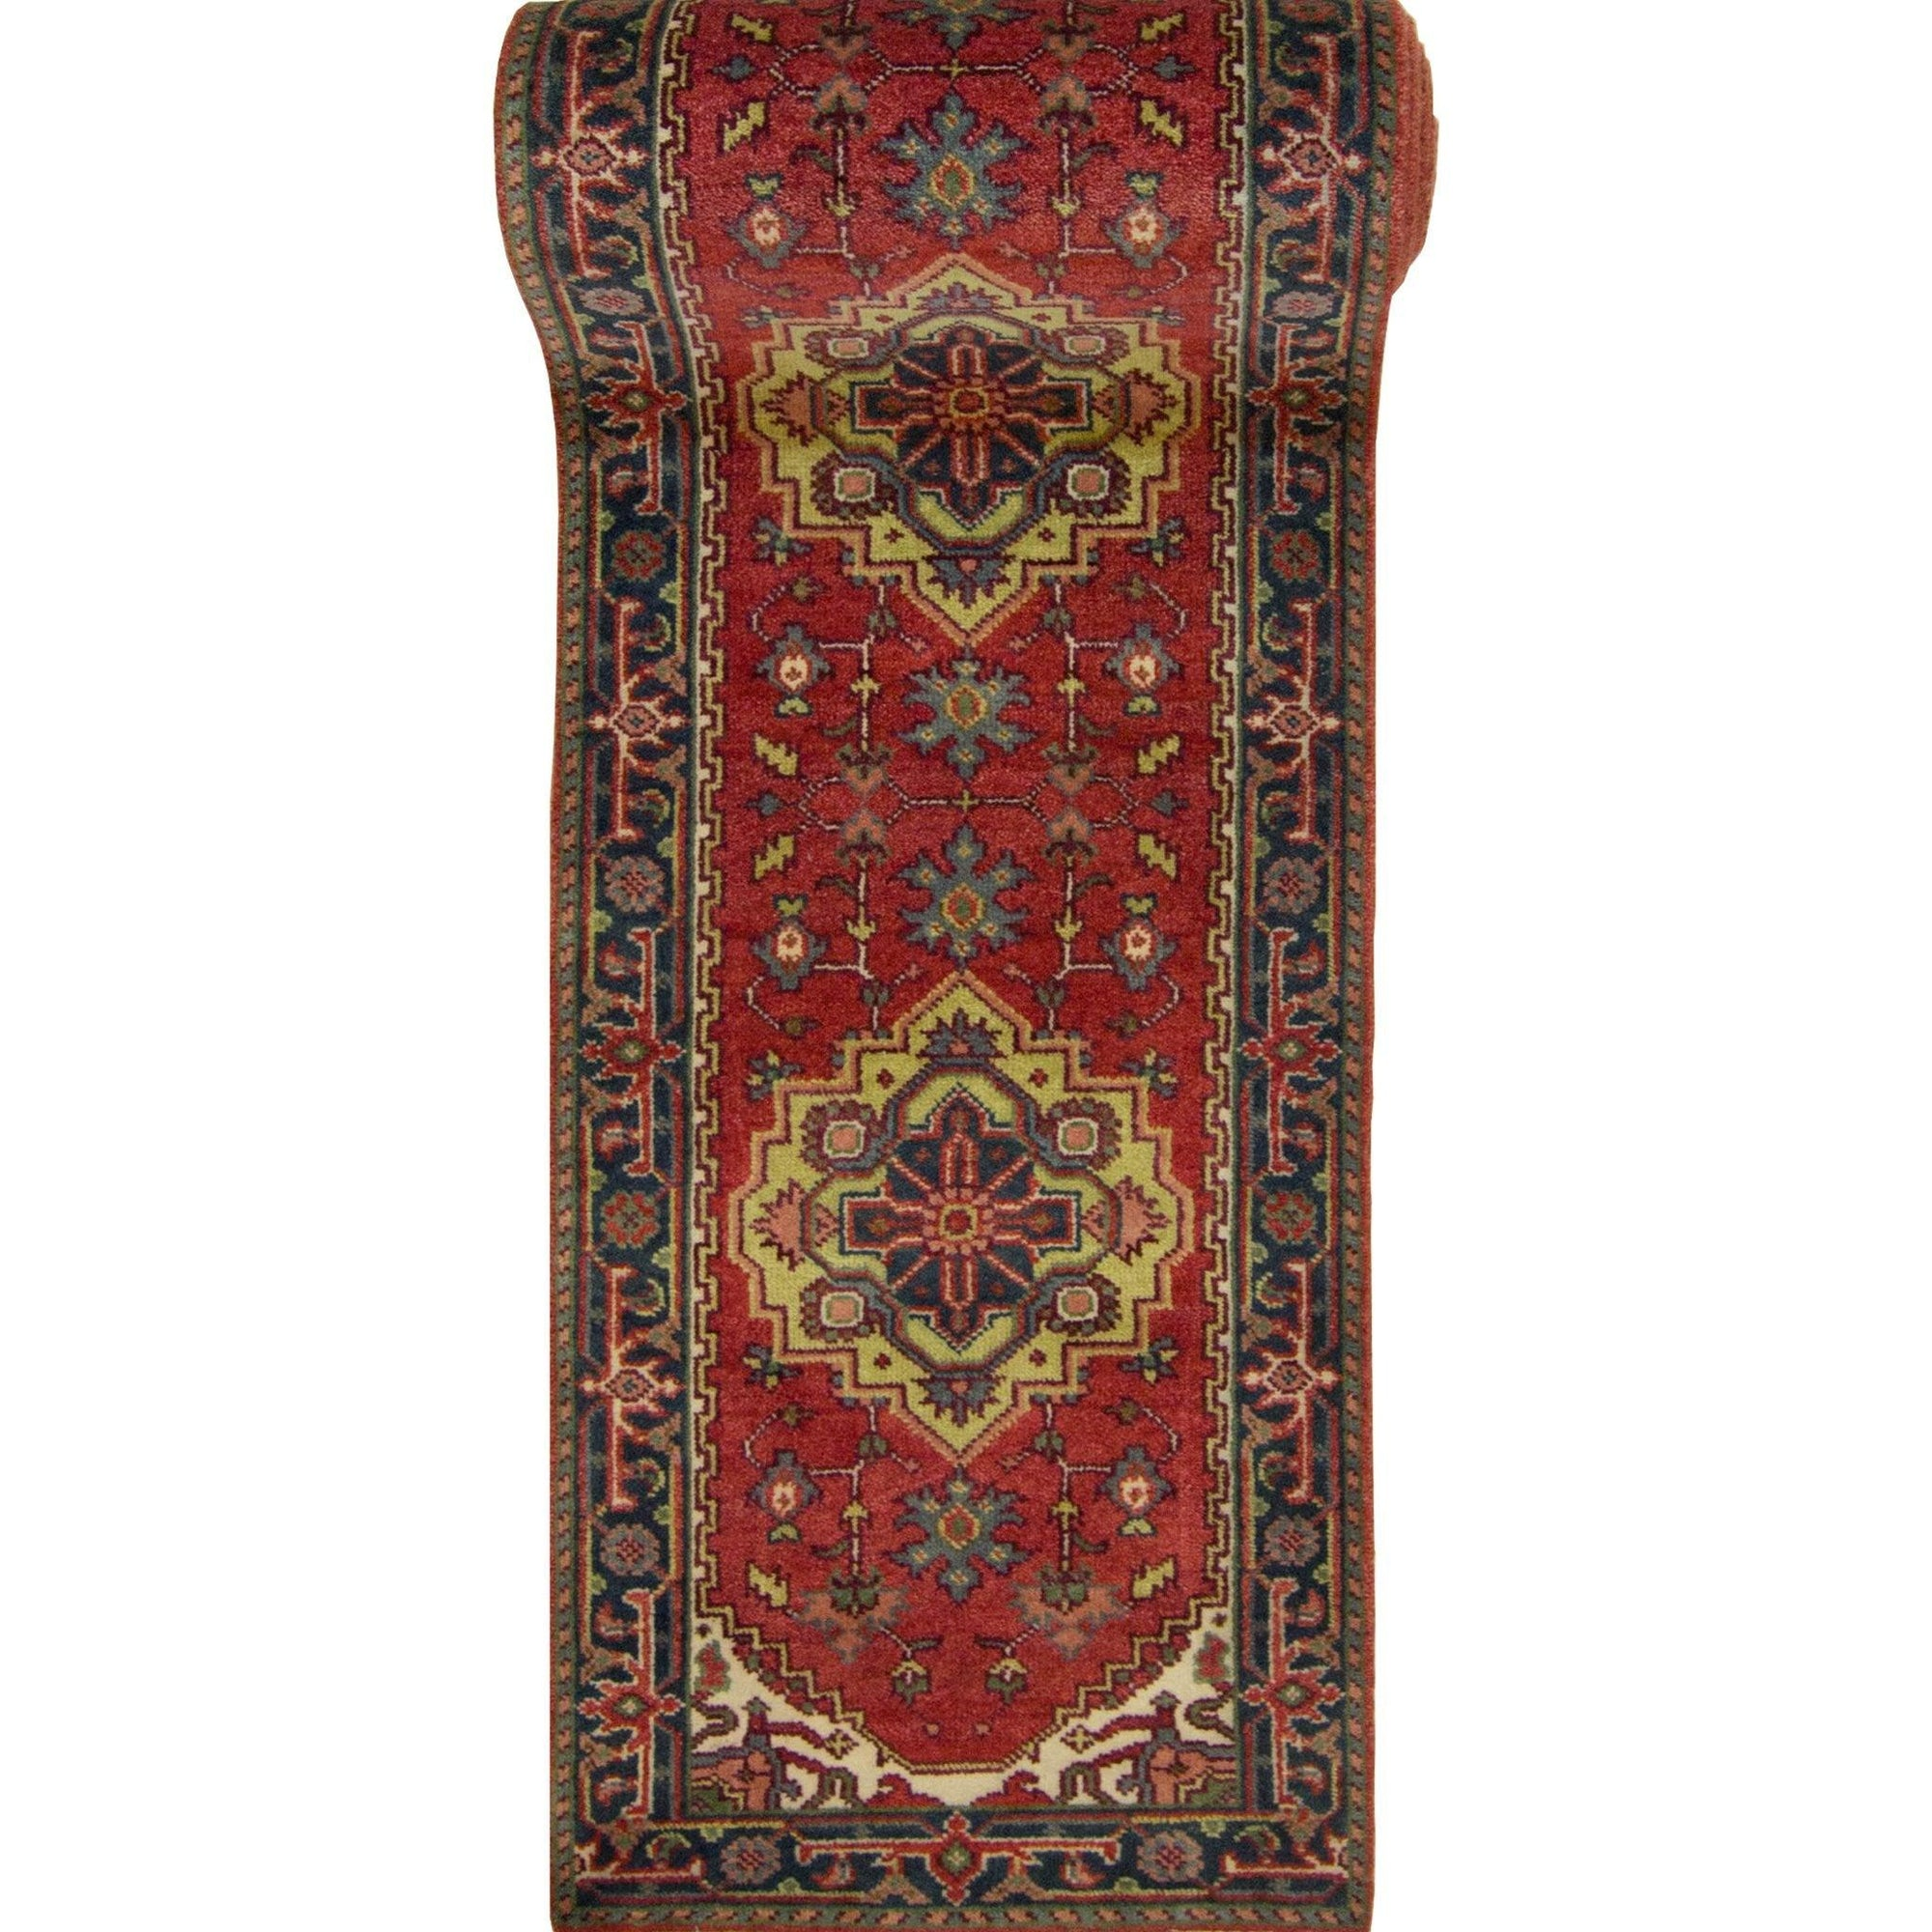 Hand-knotted Wool Persian Heriz Design Runner 78cm x 600cm Persian-Rug | House-of-Haghi | NewMarket | Auckland | NZ | Handmade Persian Rugs | Hand Knotted Persian Rugs